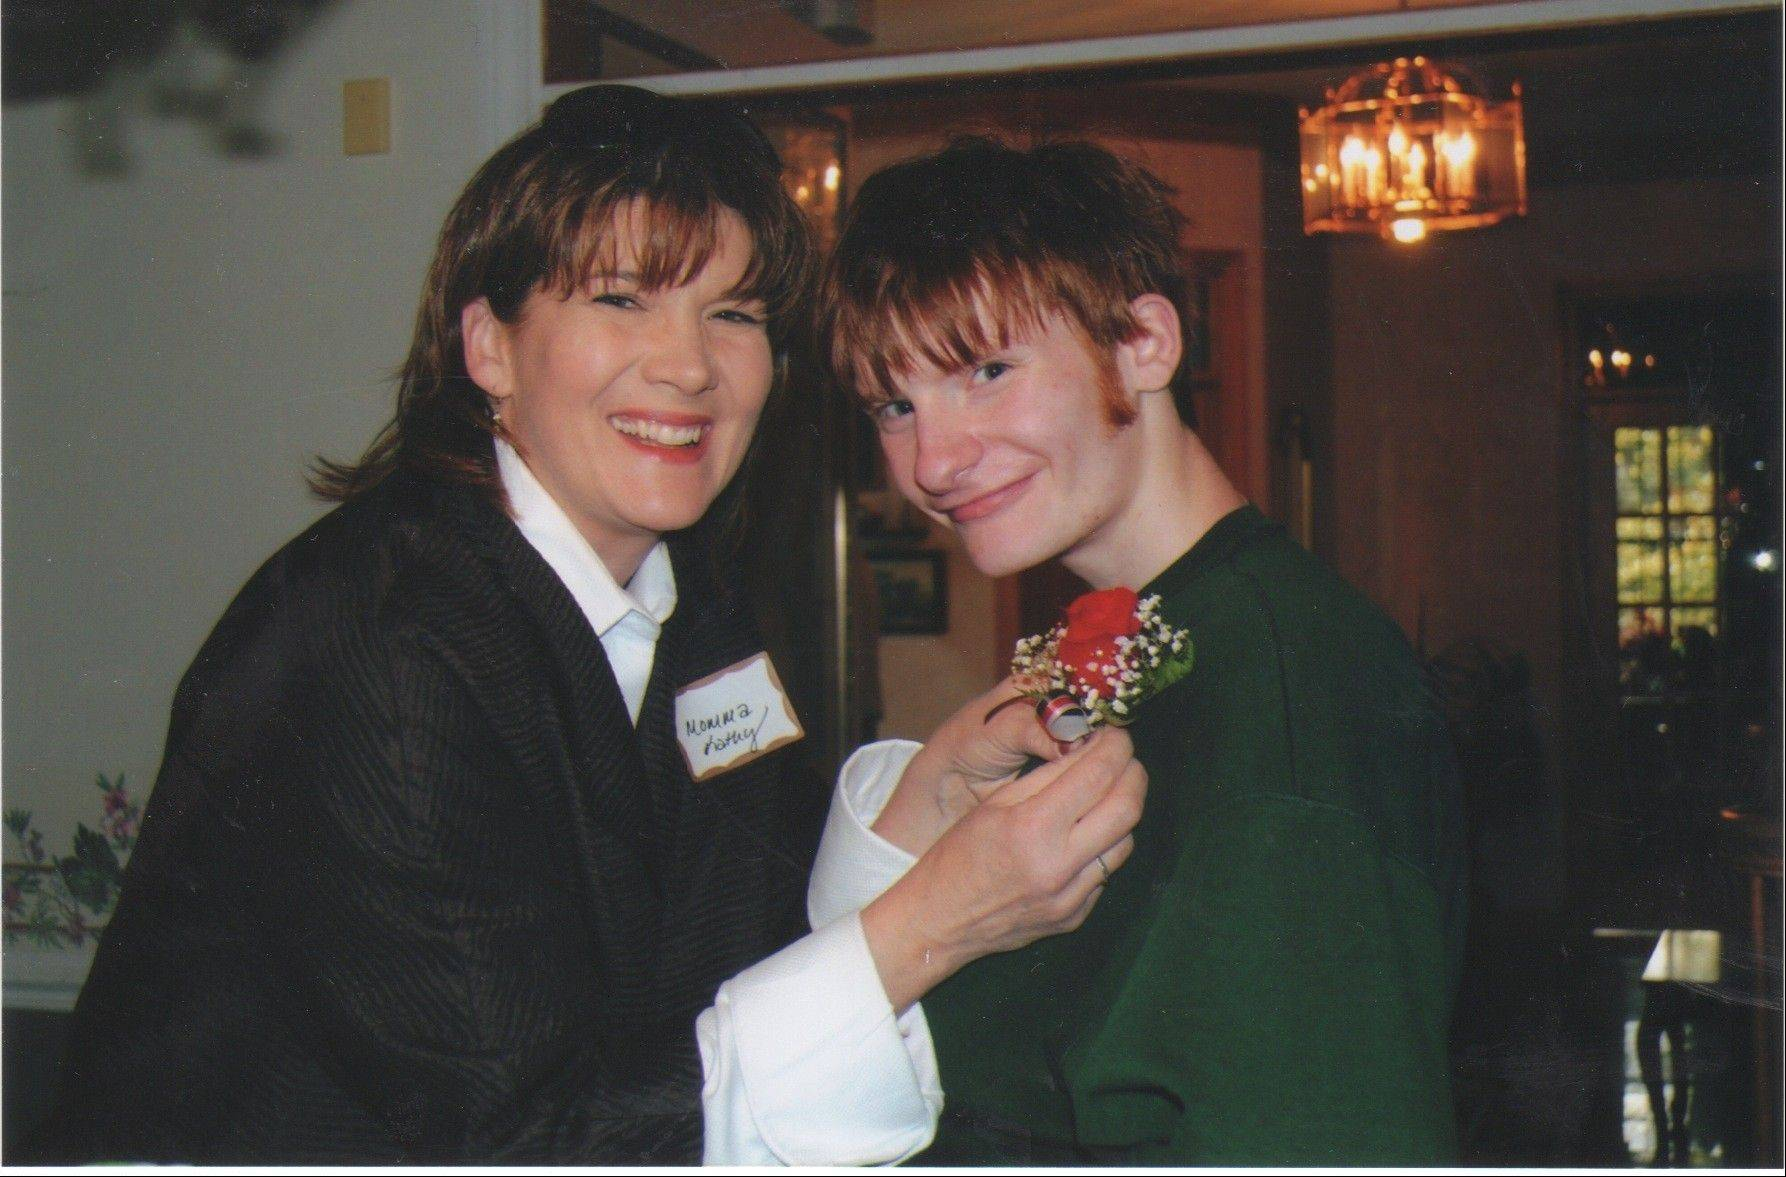 Pinning on this boutonniere to celebrate Nick Salvi's high school graduation capped off the years of dedicated work Kathy and Al Salvi put into making sure their son would reach that goal.